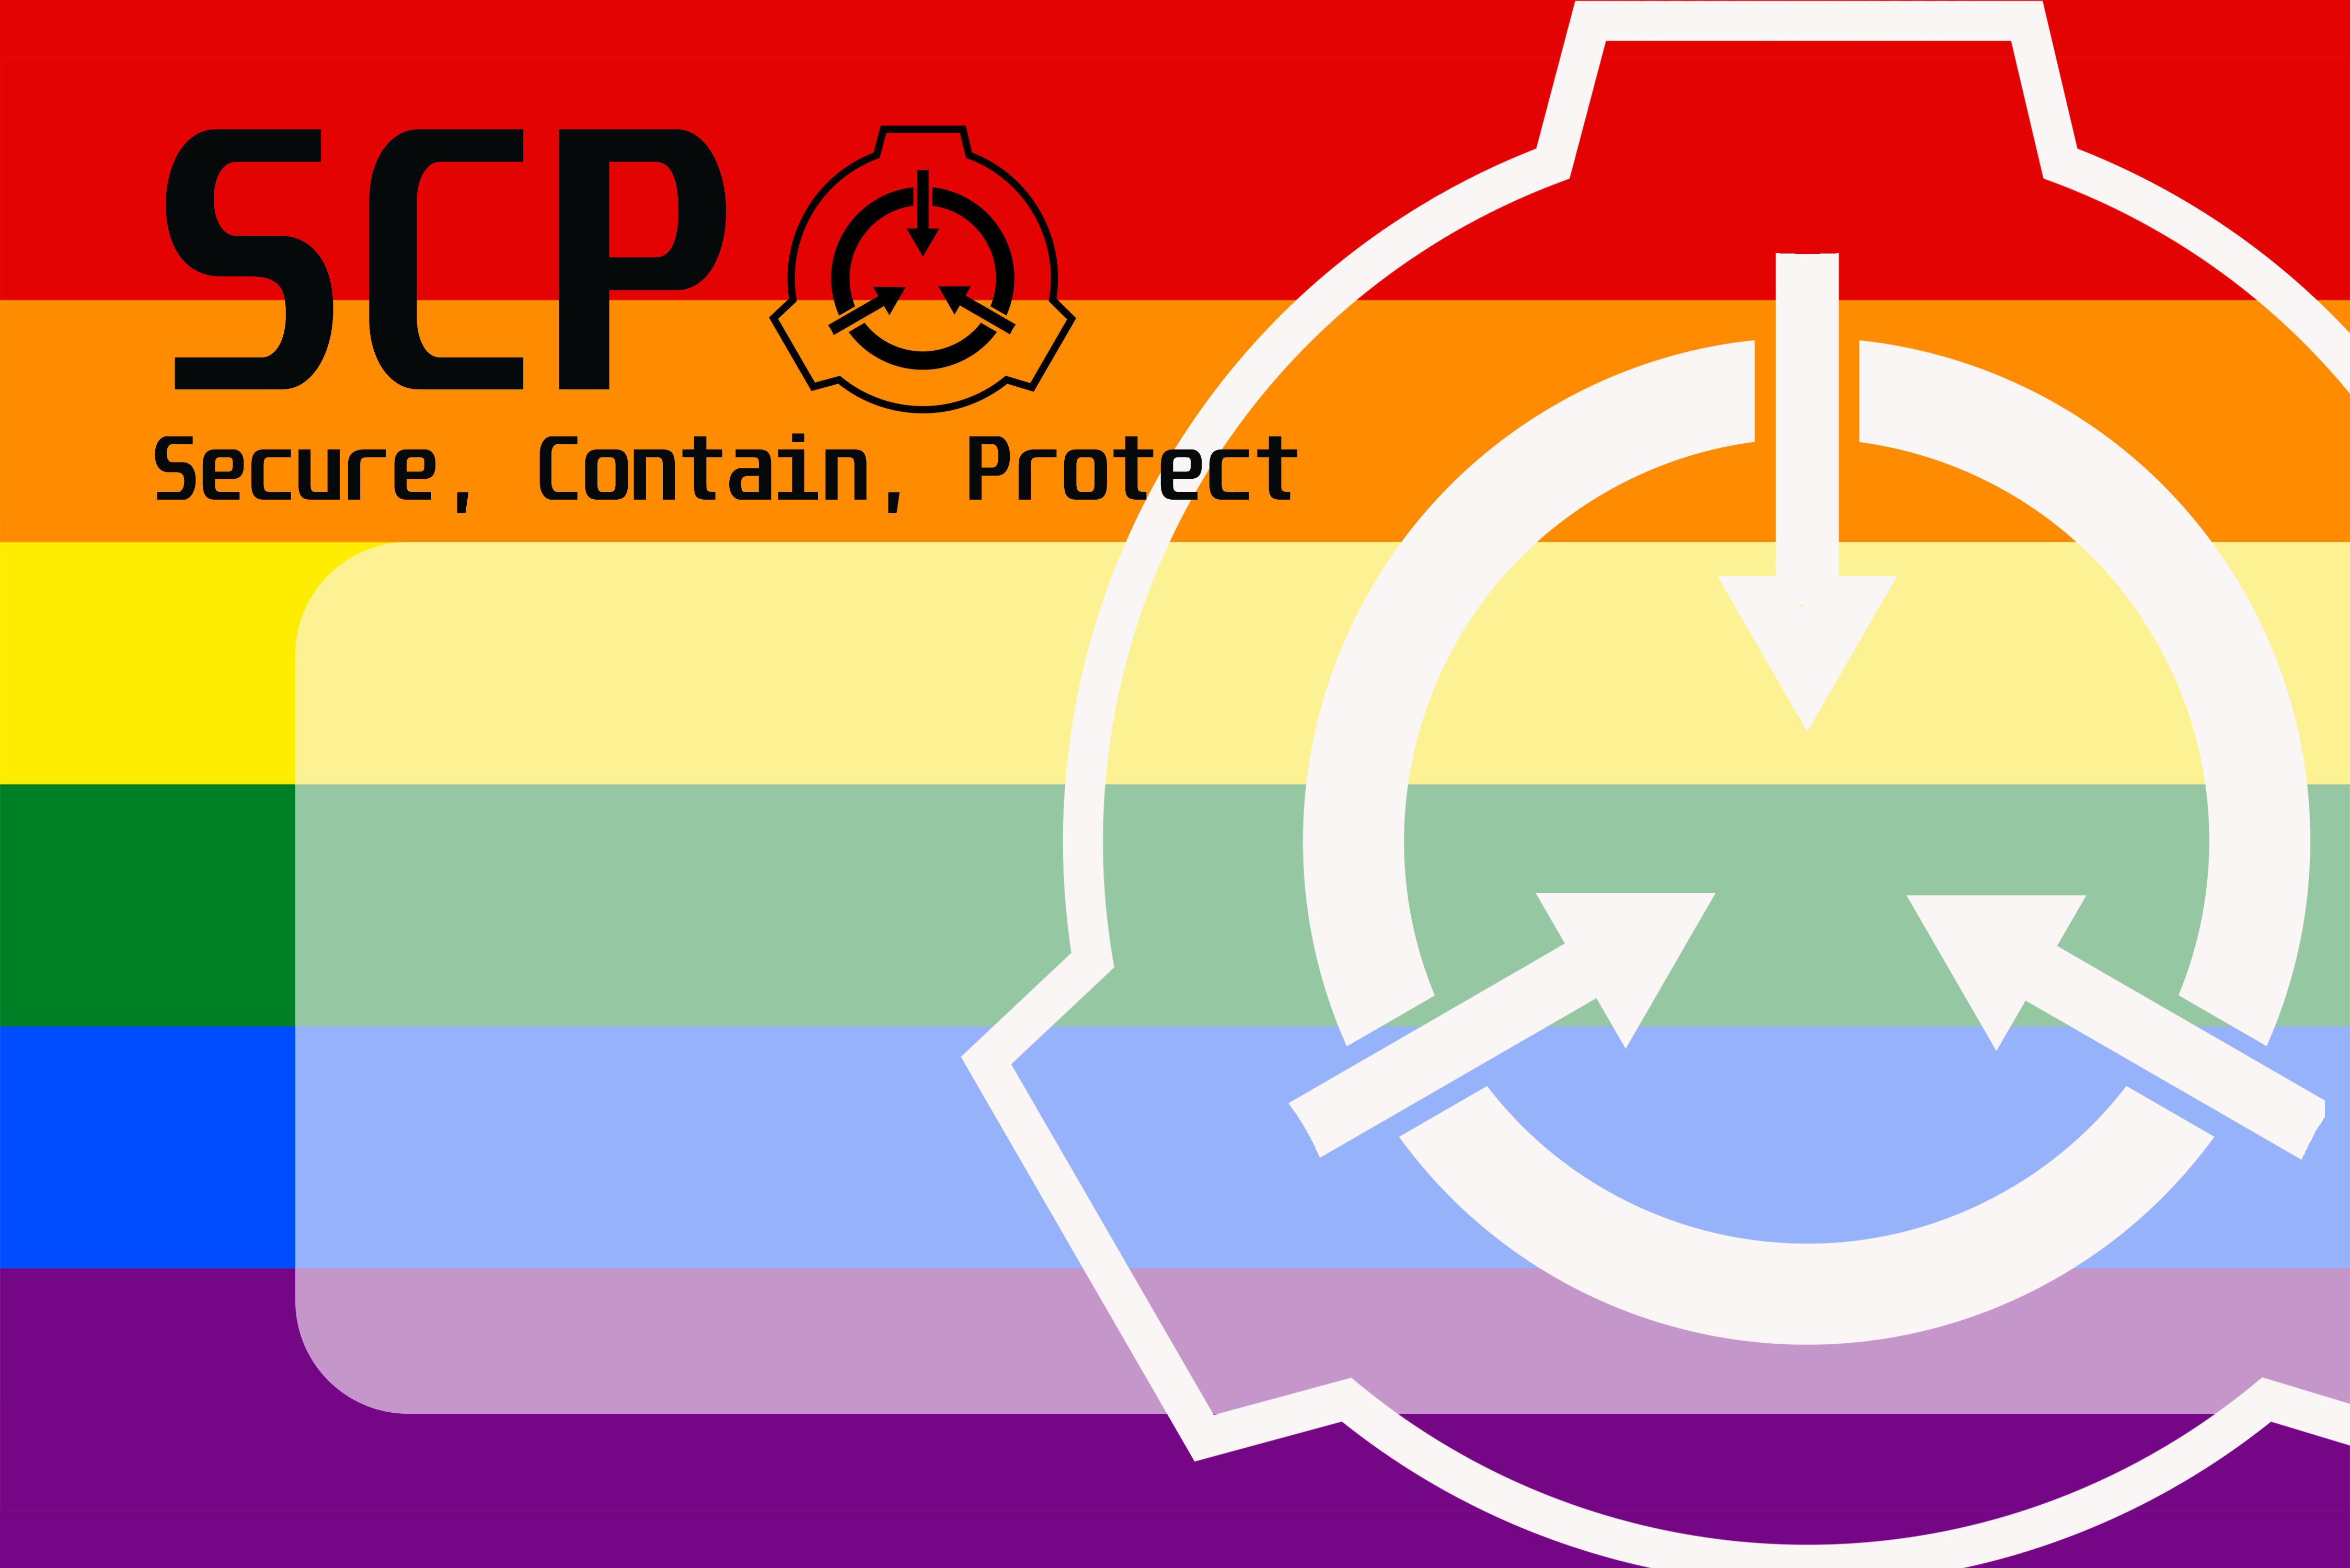 SCP-Ccard-Rainbow-01.png